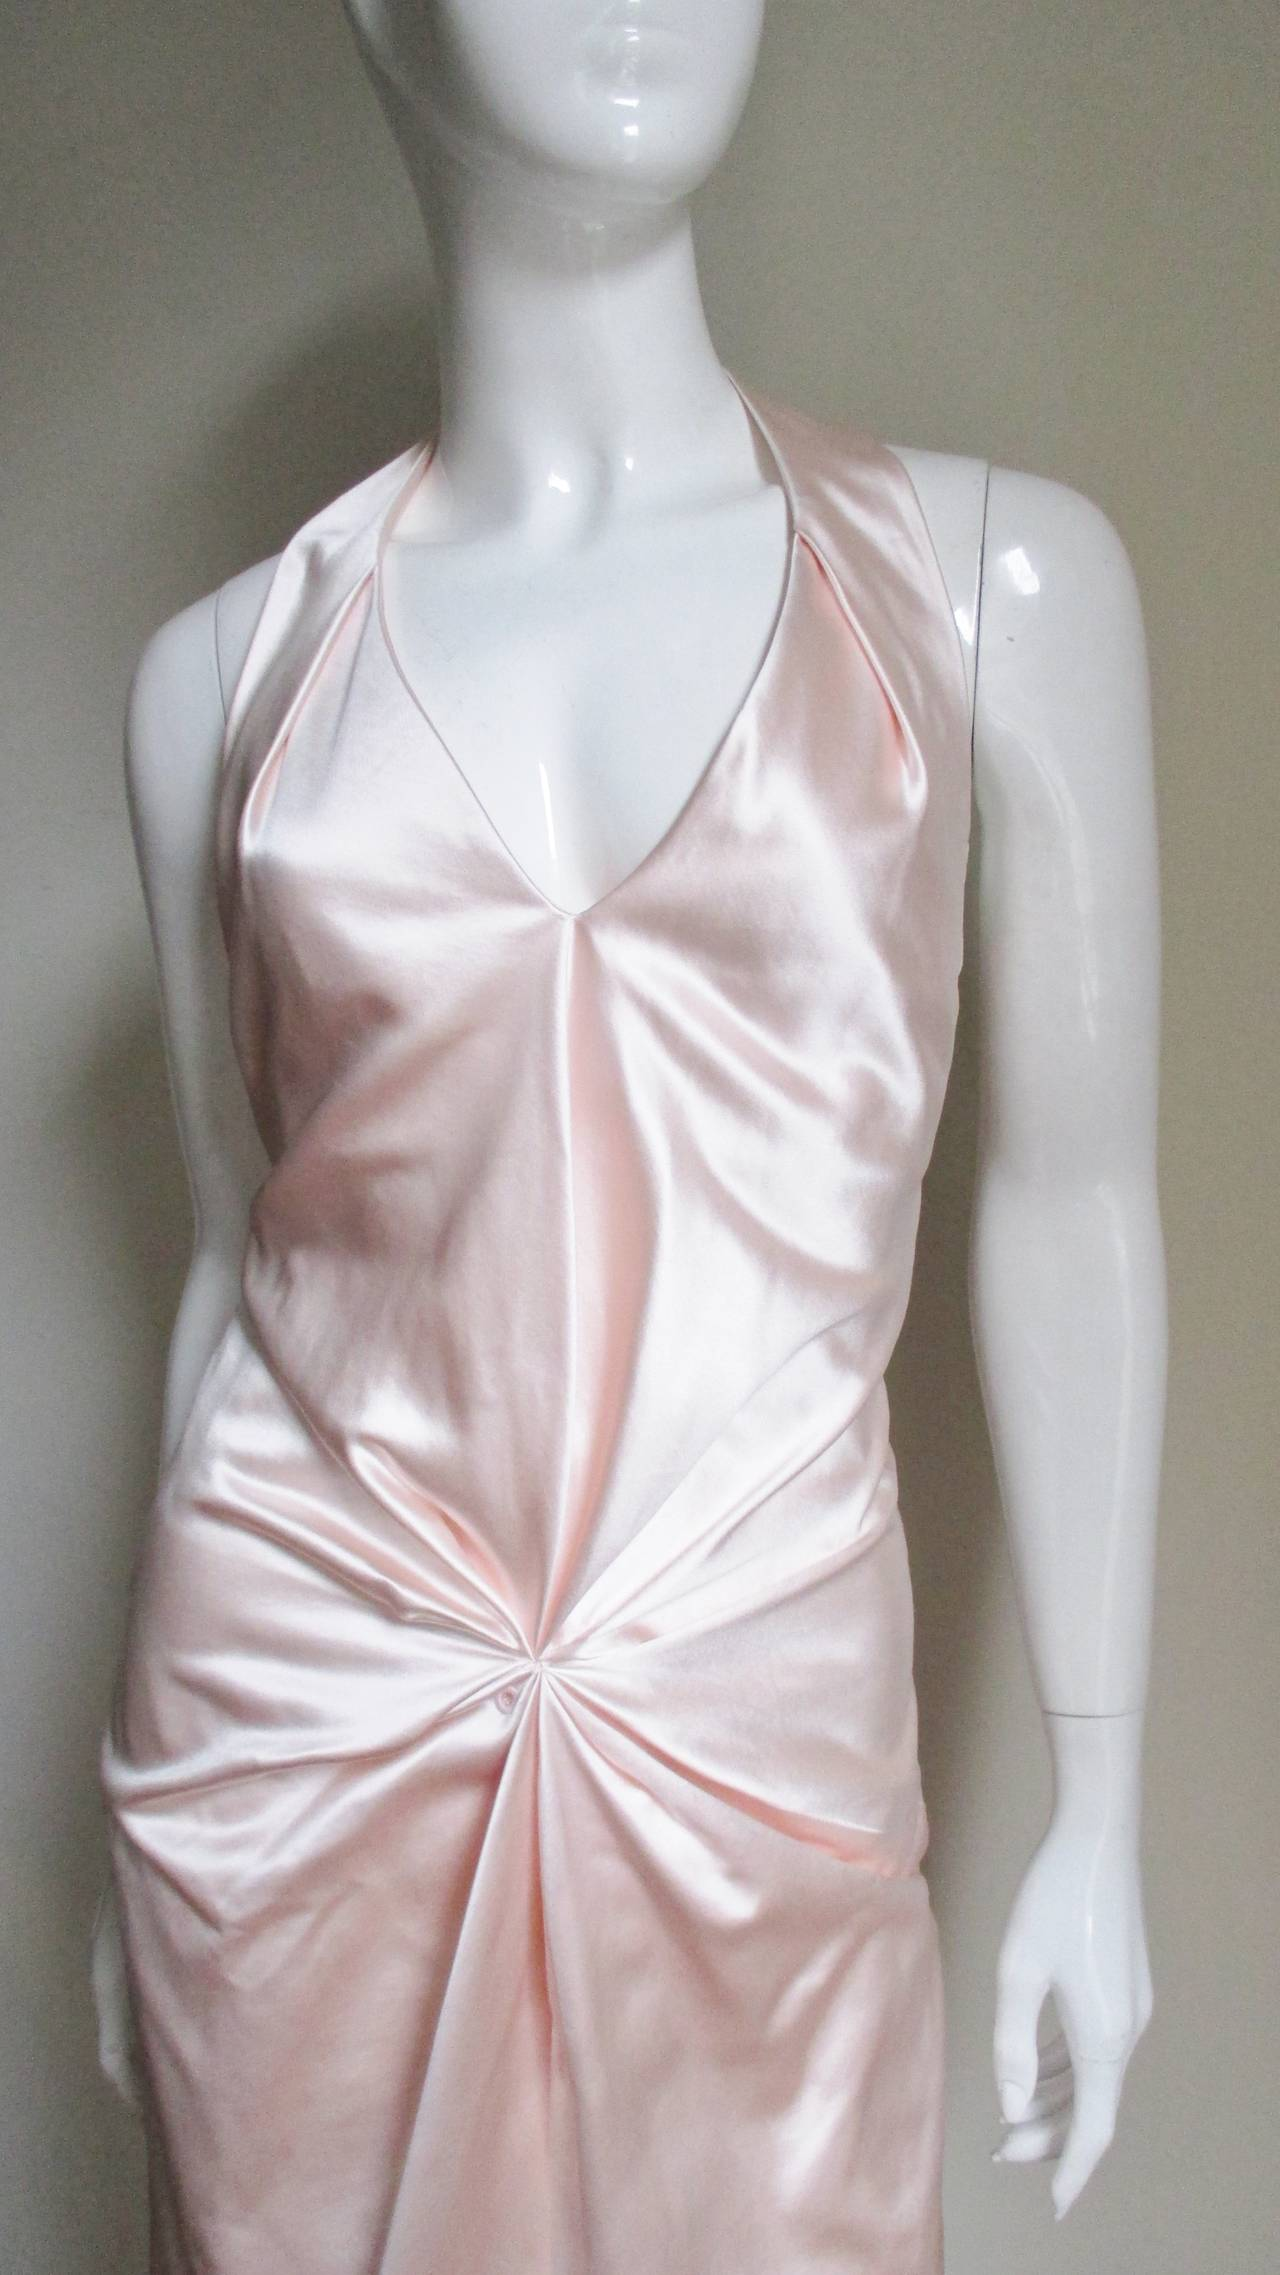 A silk peau de soie dress in a delicate shell pink.  It has a plunging halter neckline and gathering to the center front lower abdomen.  The dress is fully lined in matching light weight silk, has a matching side invisible  zipper and clear snaps at